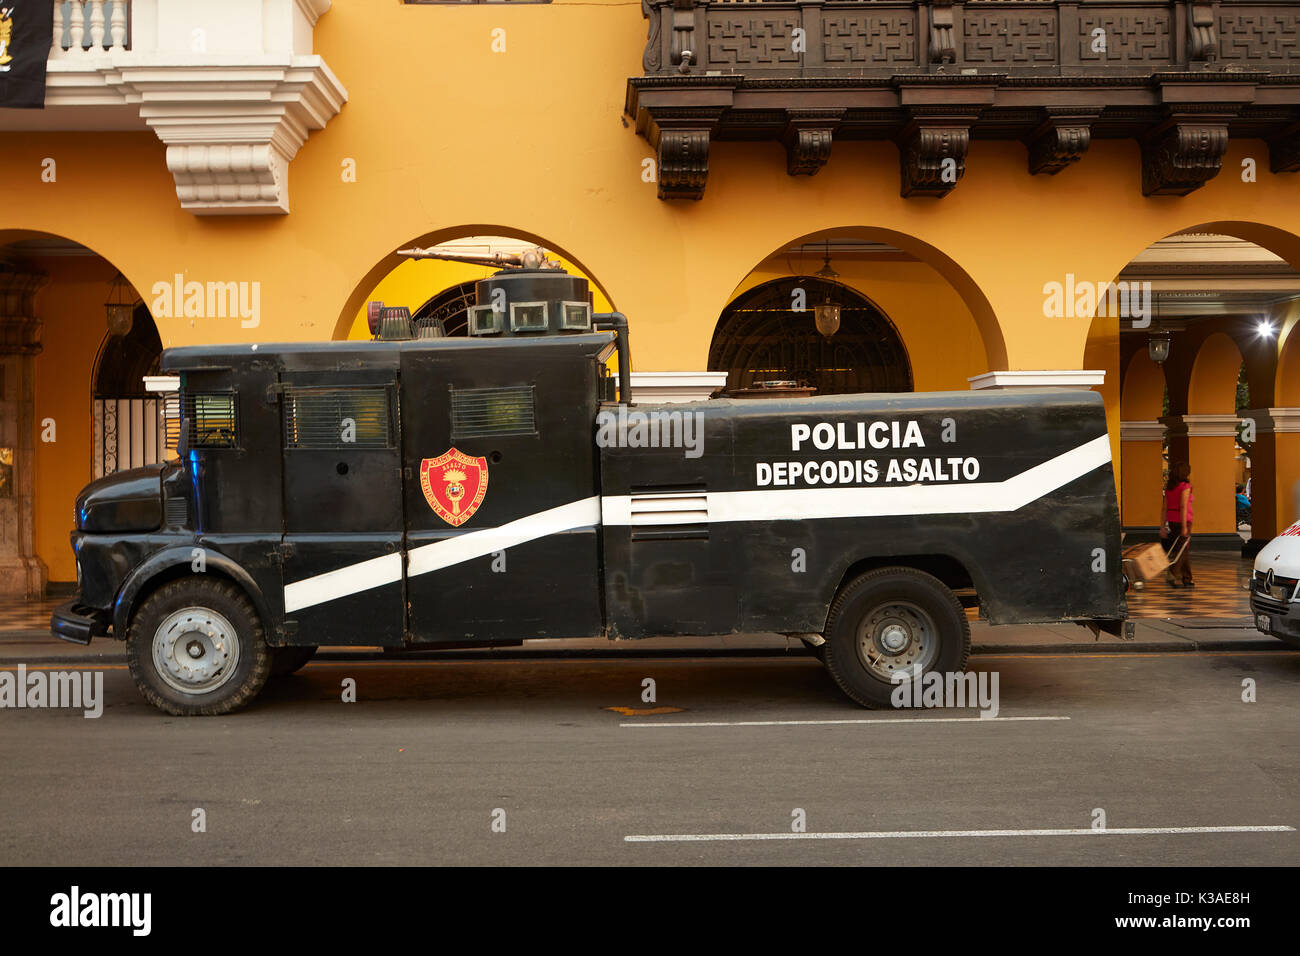 Police truck with water cannon, Plaza Mayor, Historic centre of Lima (World Heritage Site), Peru, South America - Stock Image